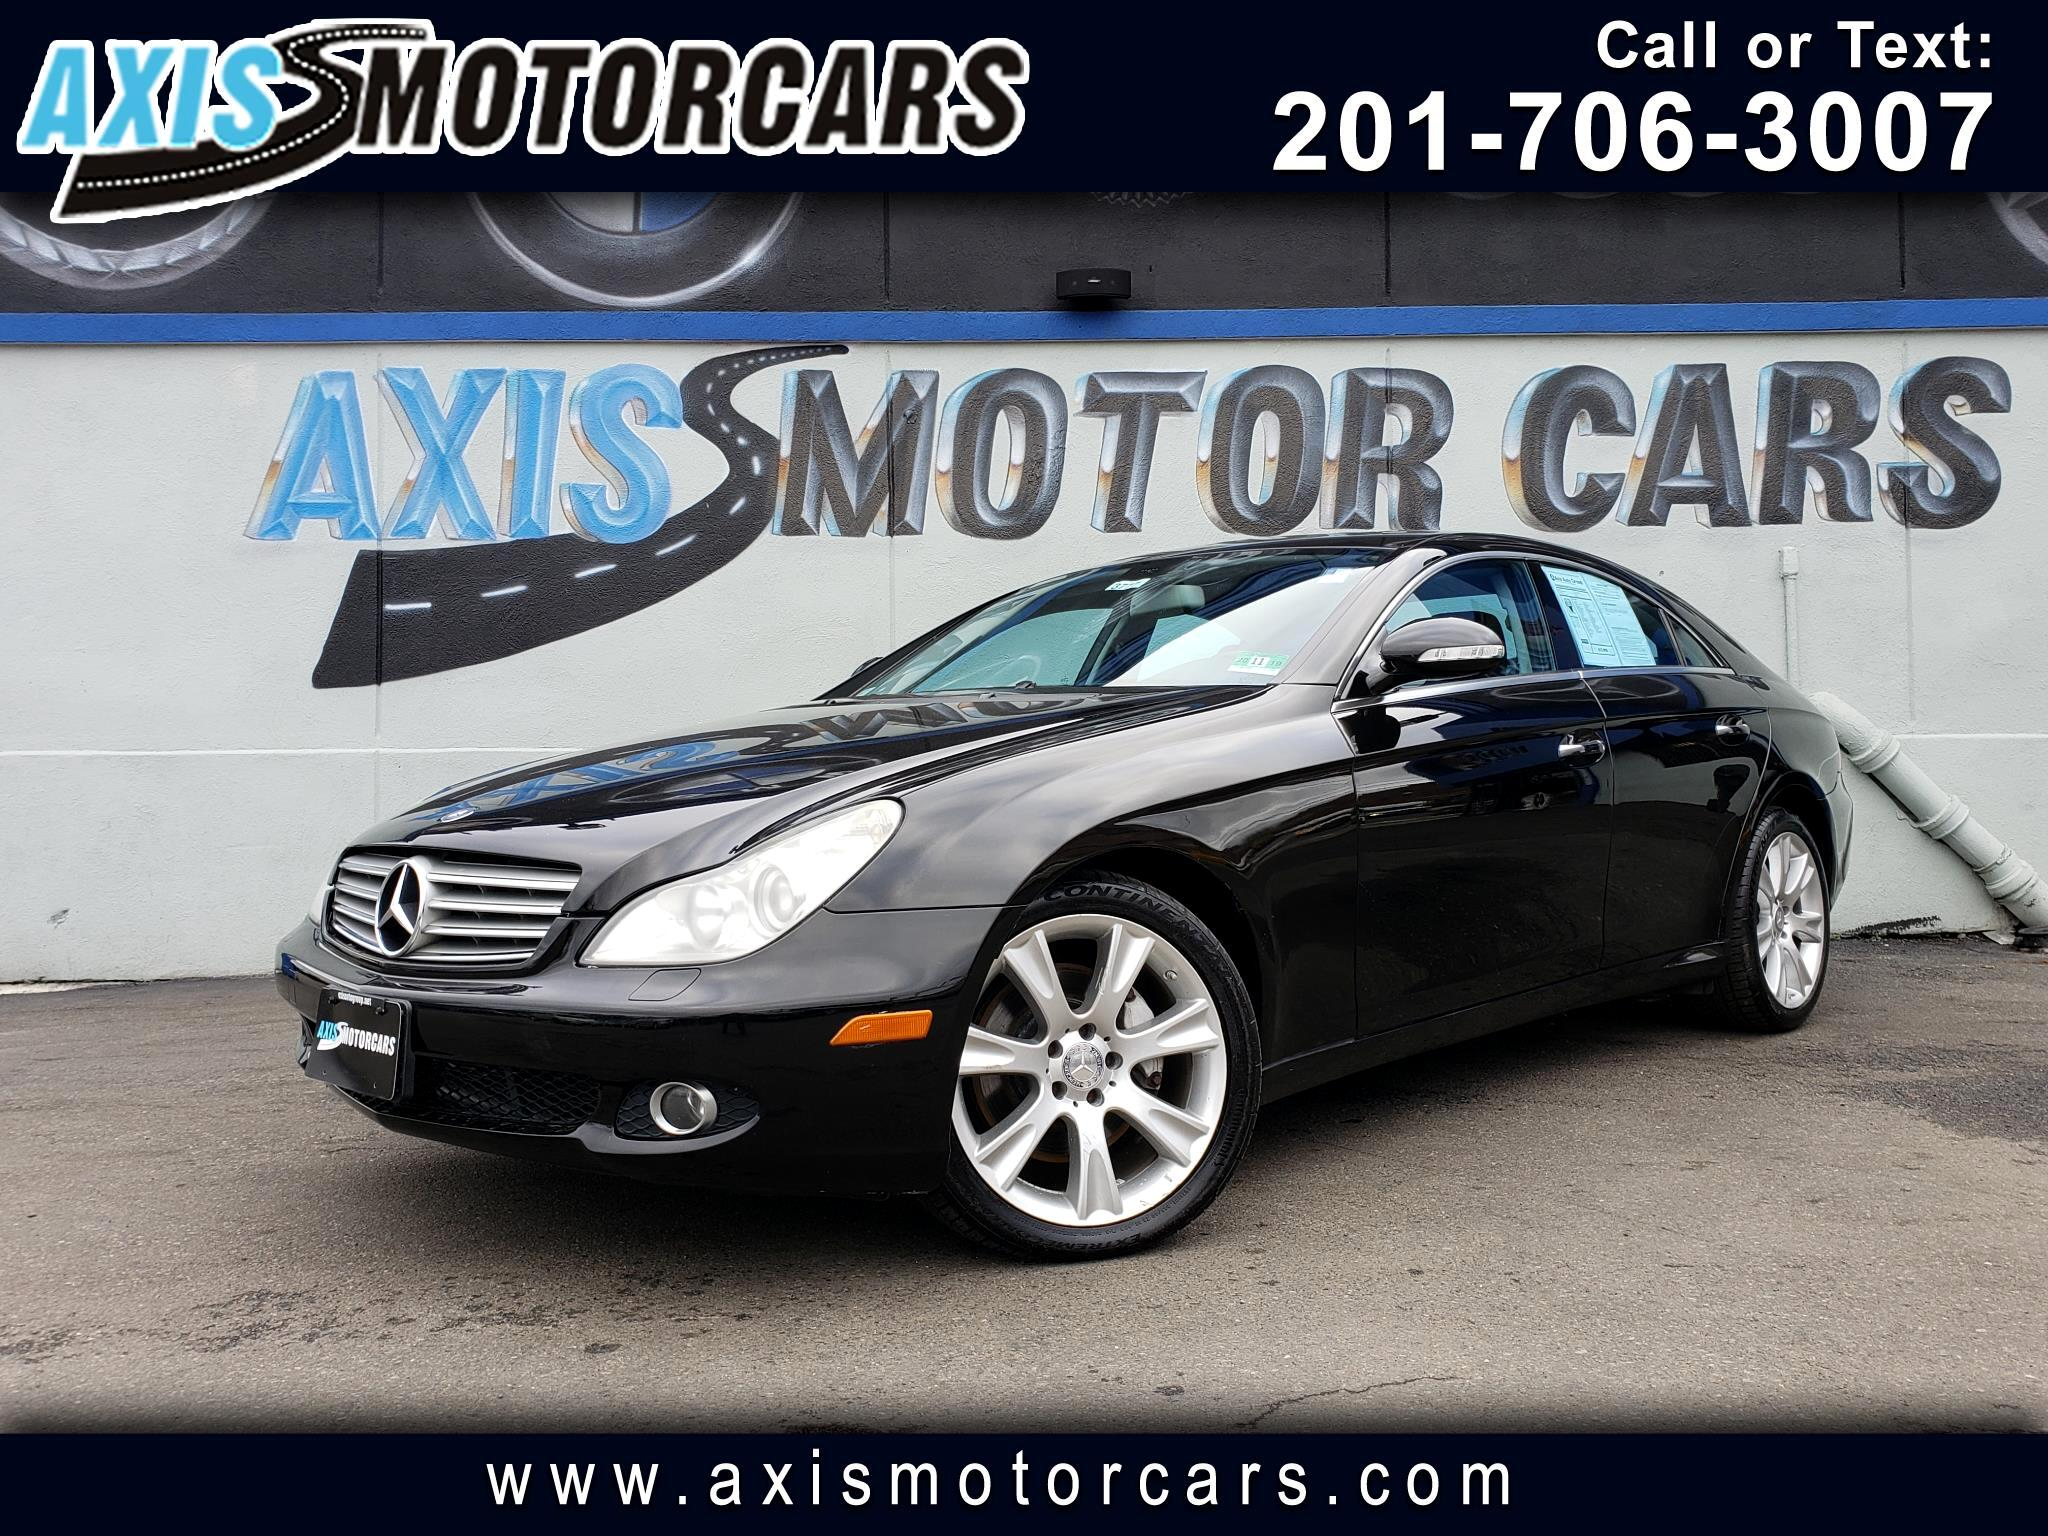 2008 Mercedes-Benz CLS550 w/Harman Kardon Surround System 1-Owner vehicle